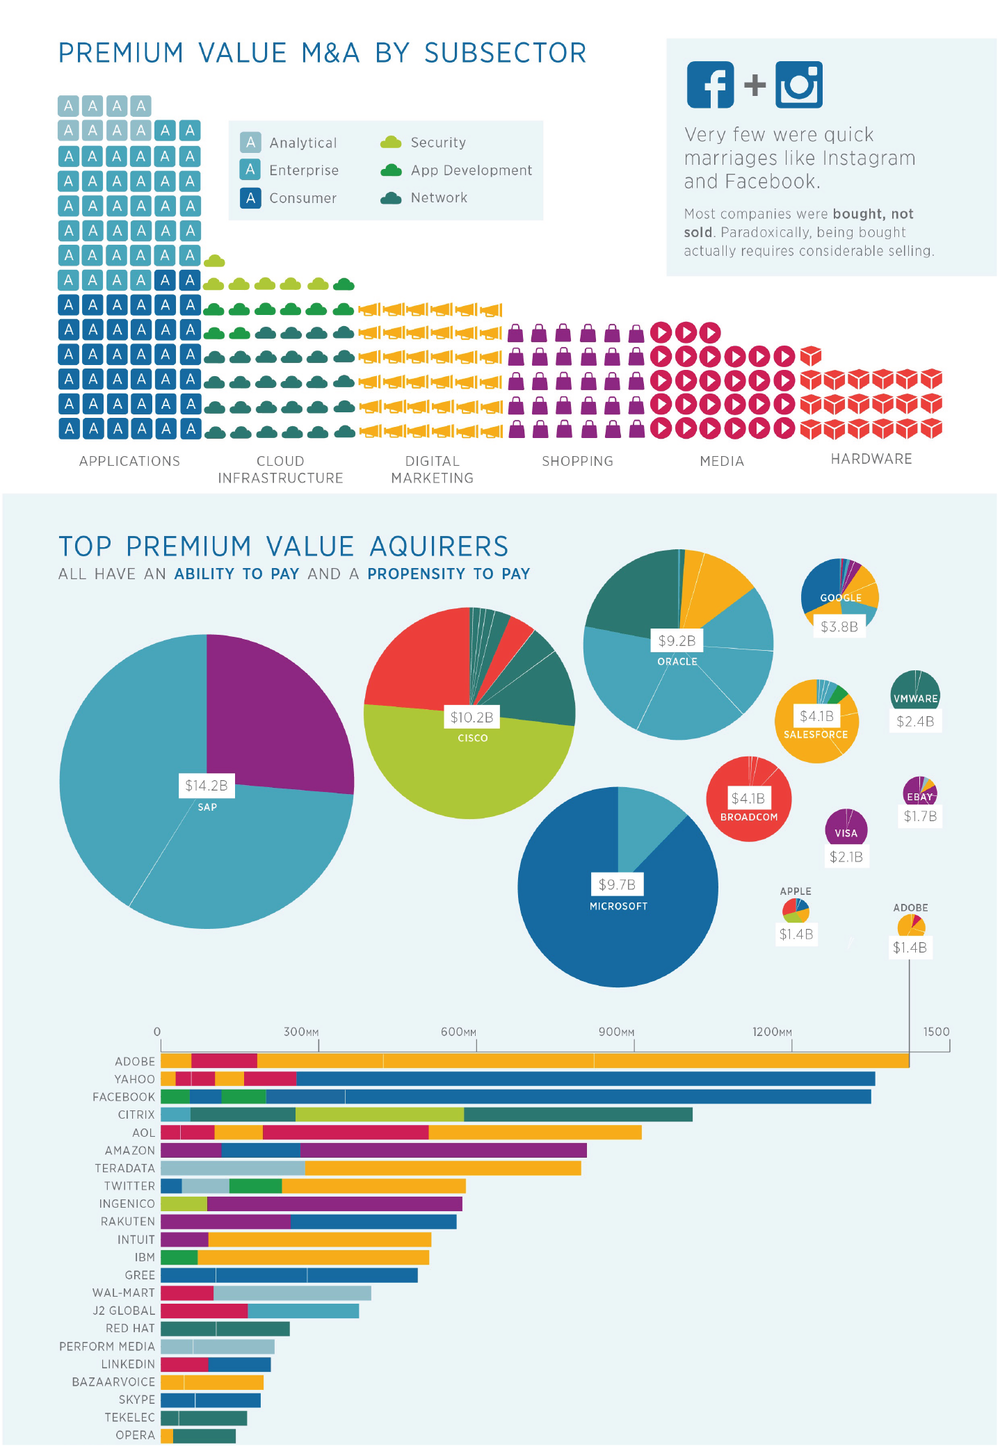 Infographic on Premium Value Mergers and Acquisitions